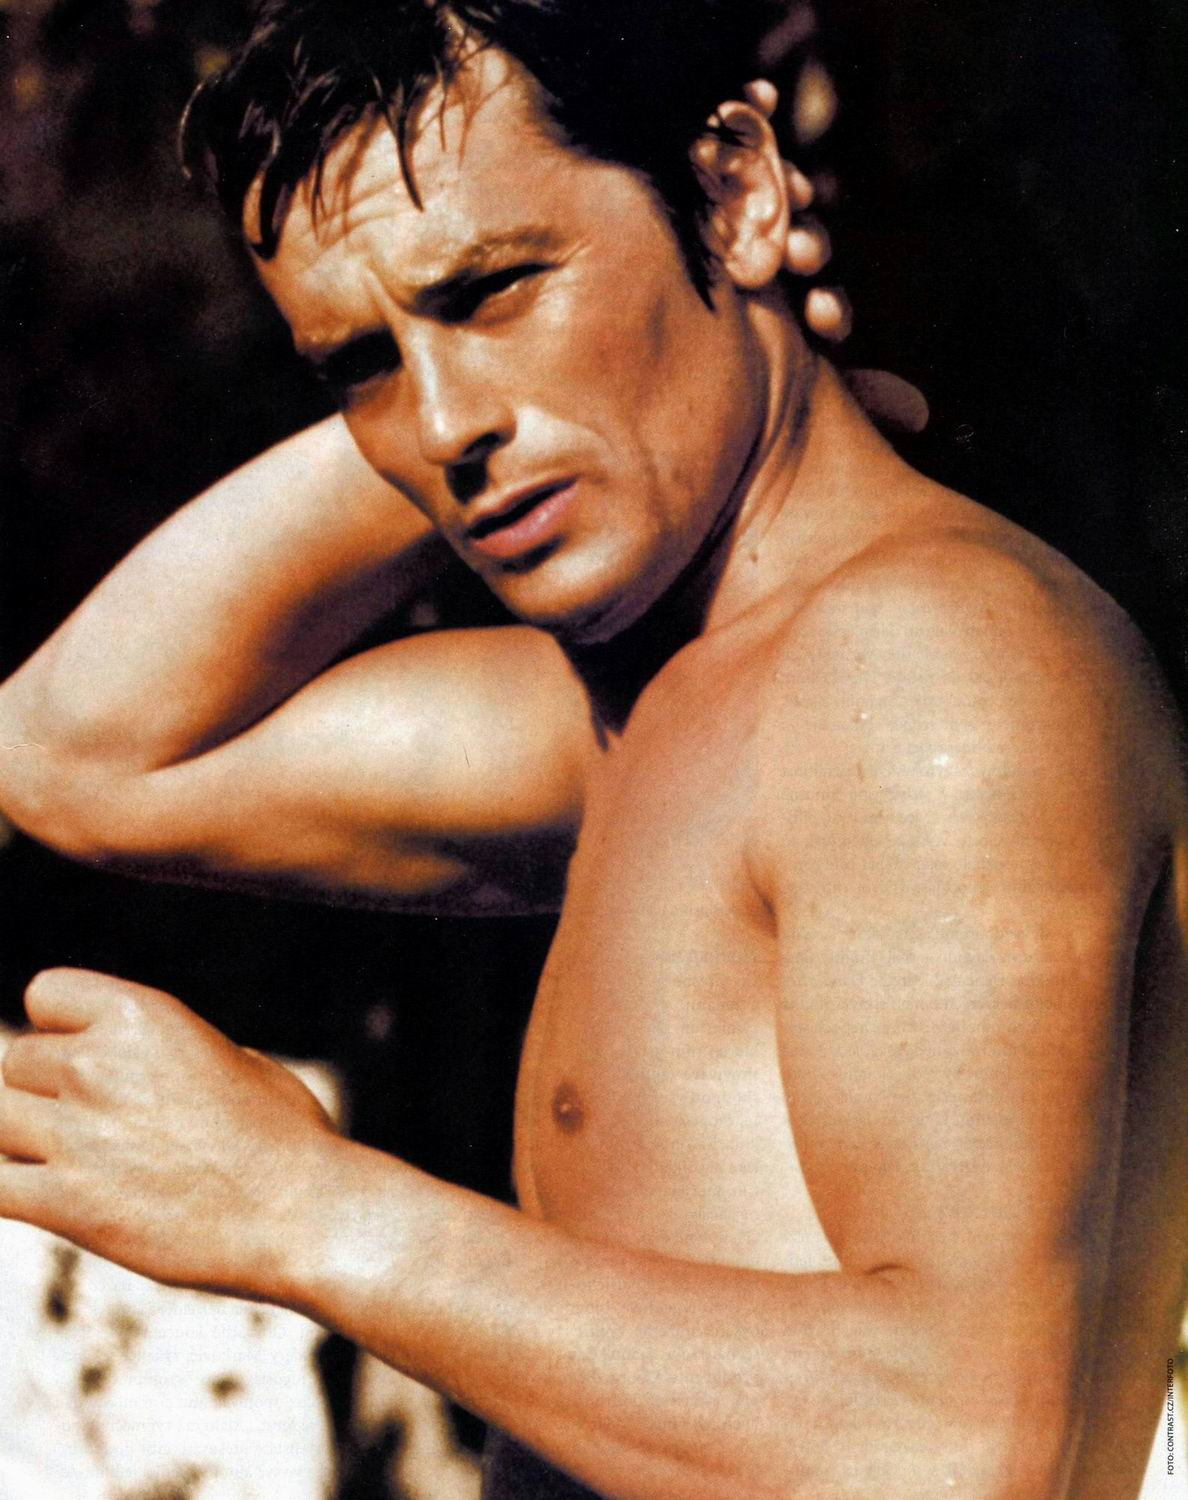 The pools french film beautiful portraits beautiful for Alain delon la piscine